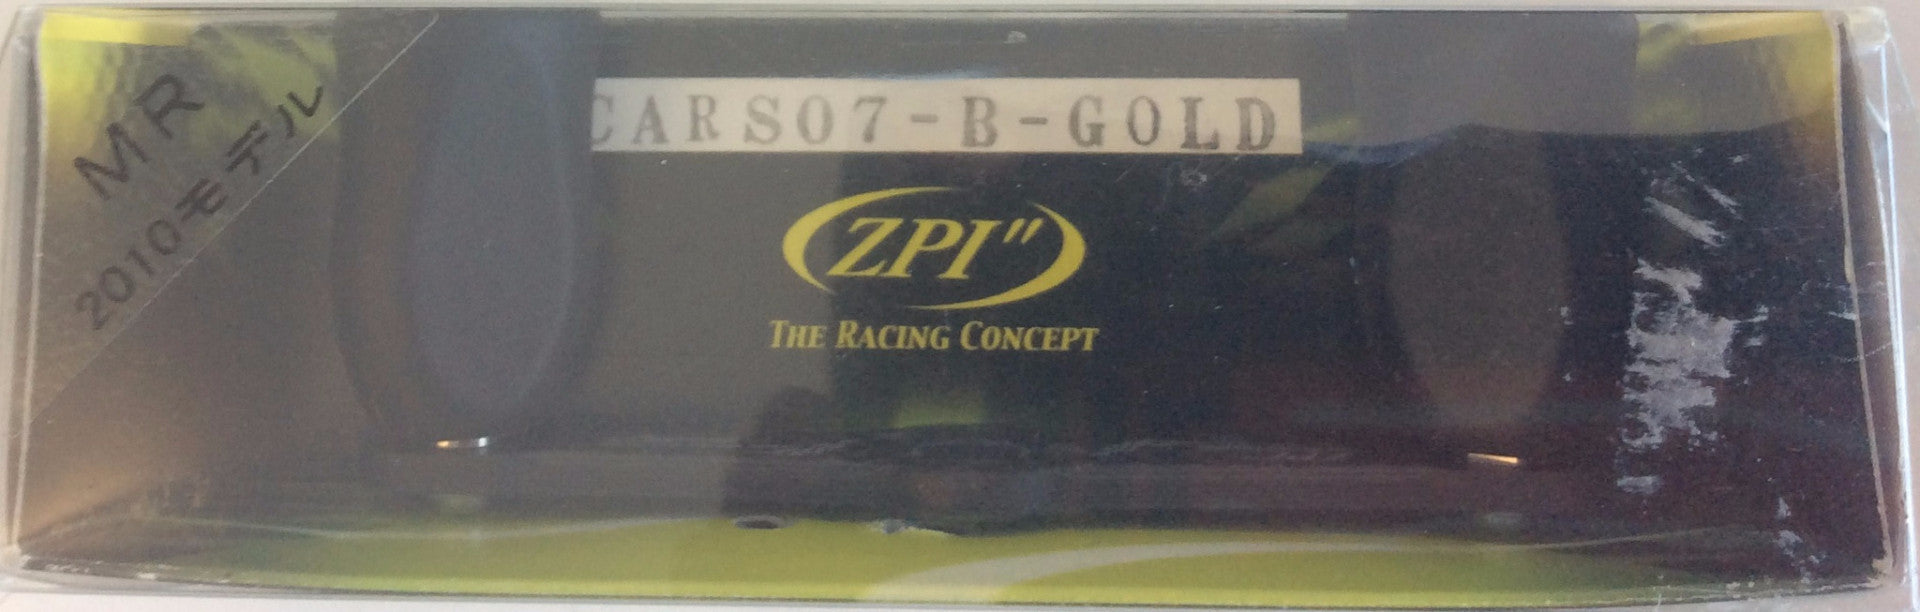 Reel Parts, ZPI CARS07-B-Gold Carbon Handle (6582), [variant_title] - bait-tackle-store